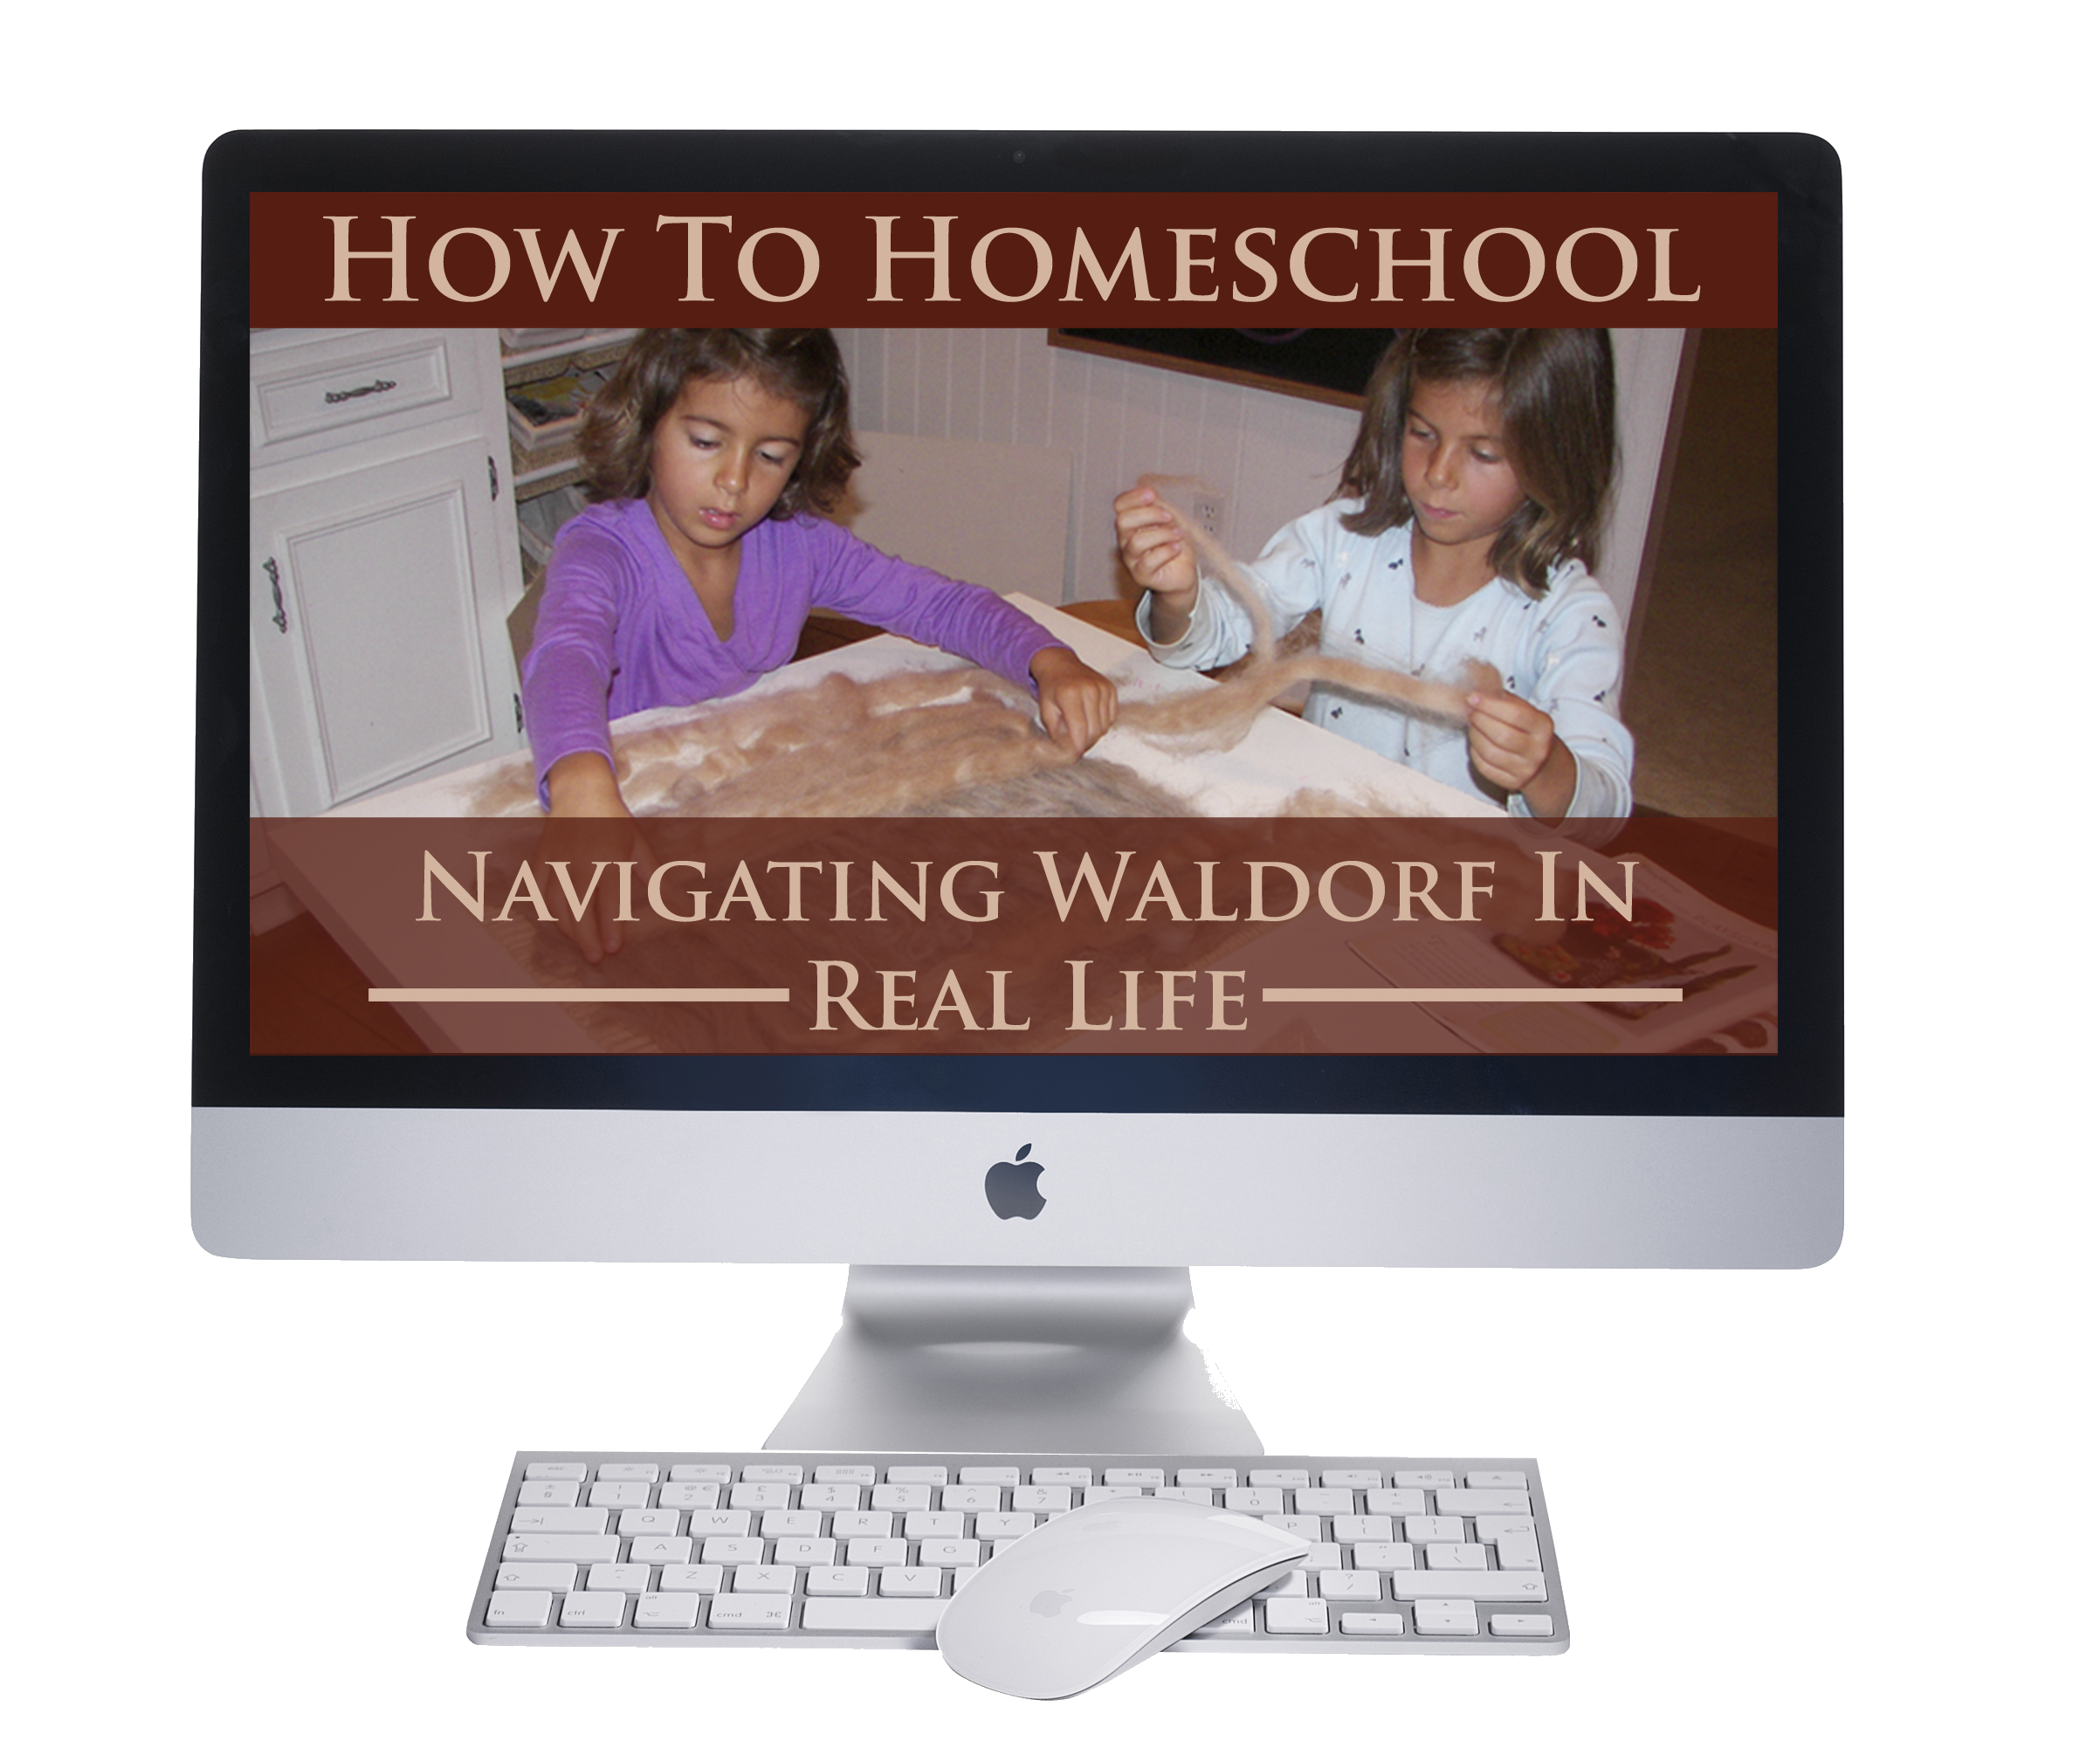 Waldorf homeschooling weaving in spring for Waldorf at home